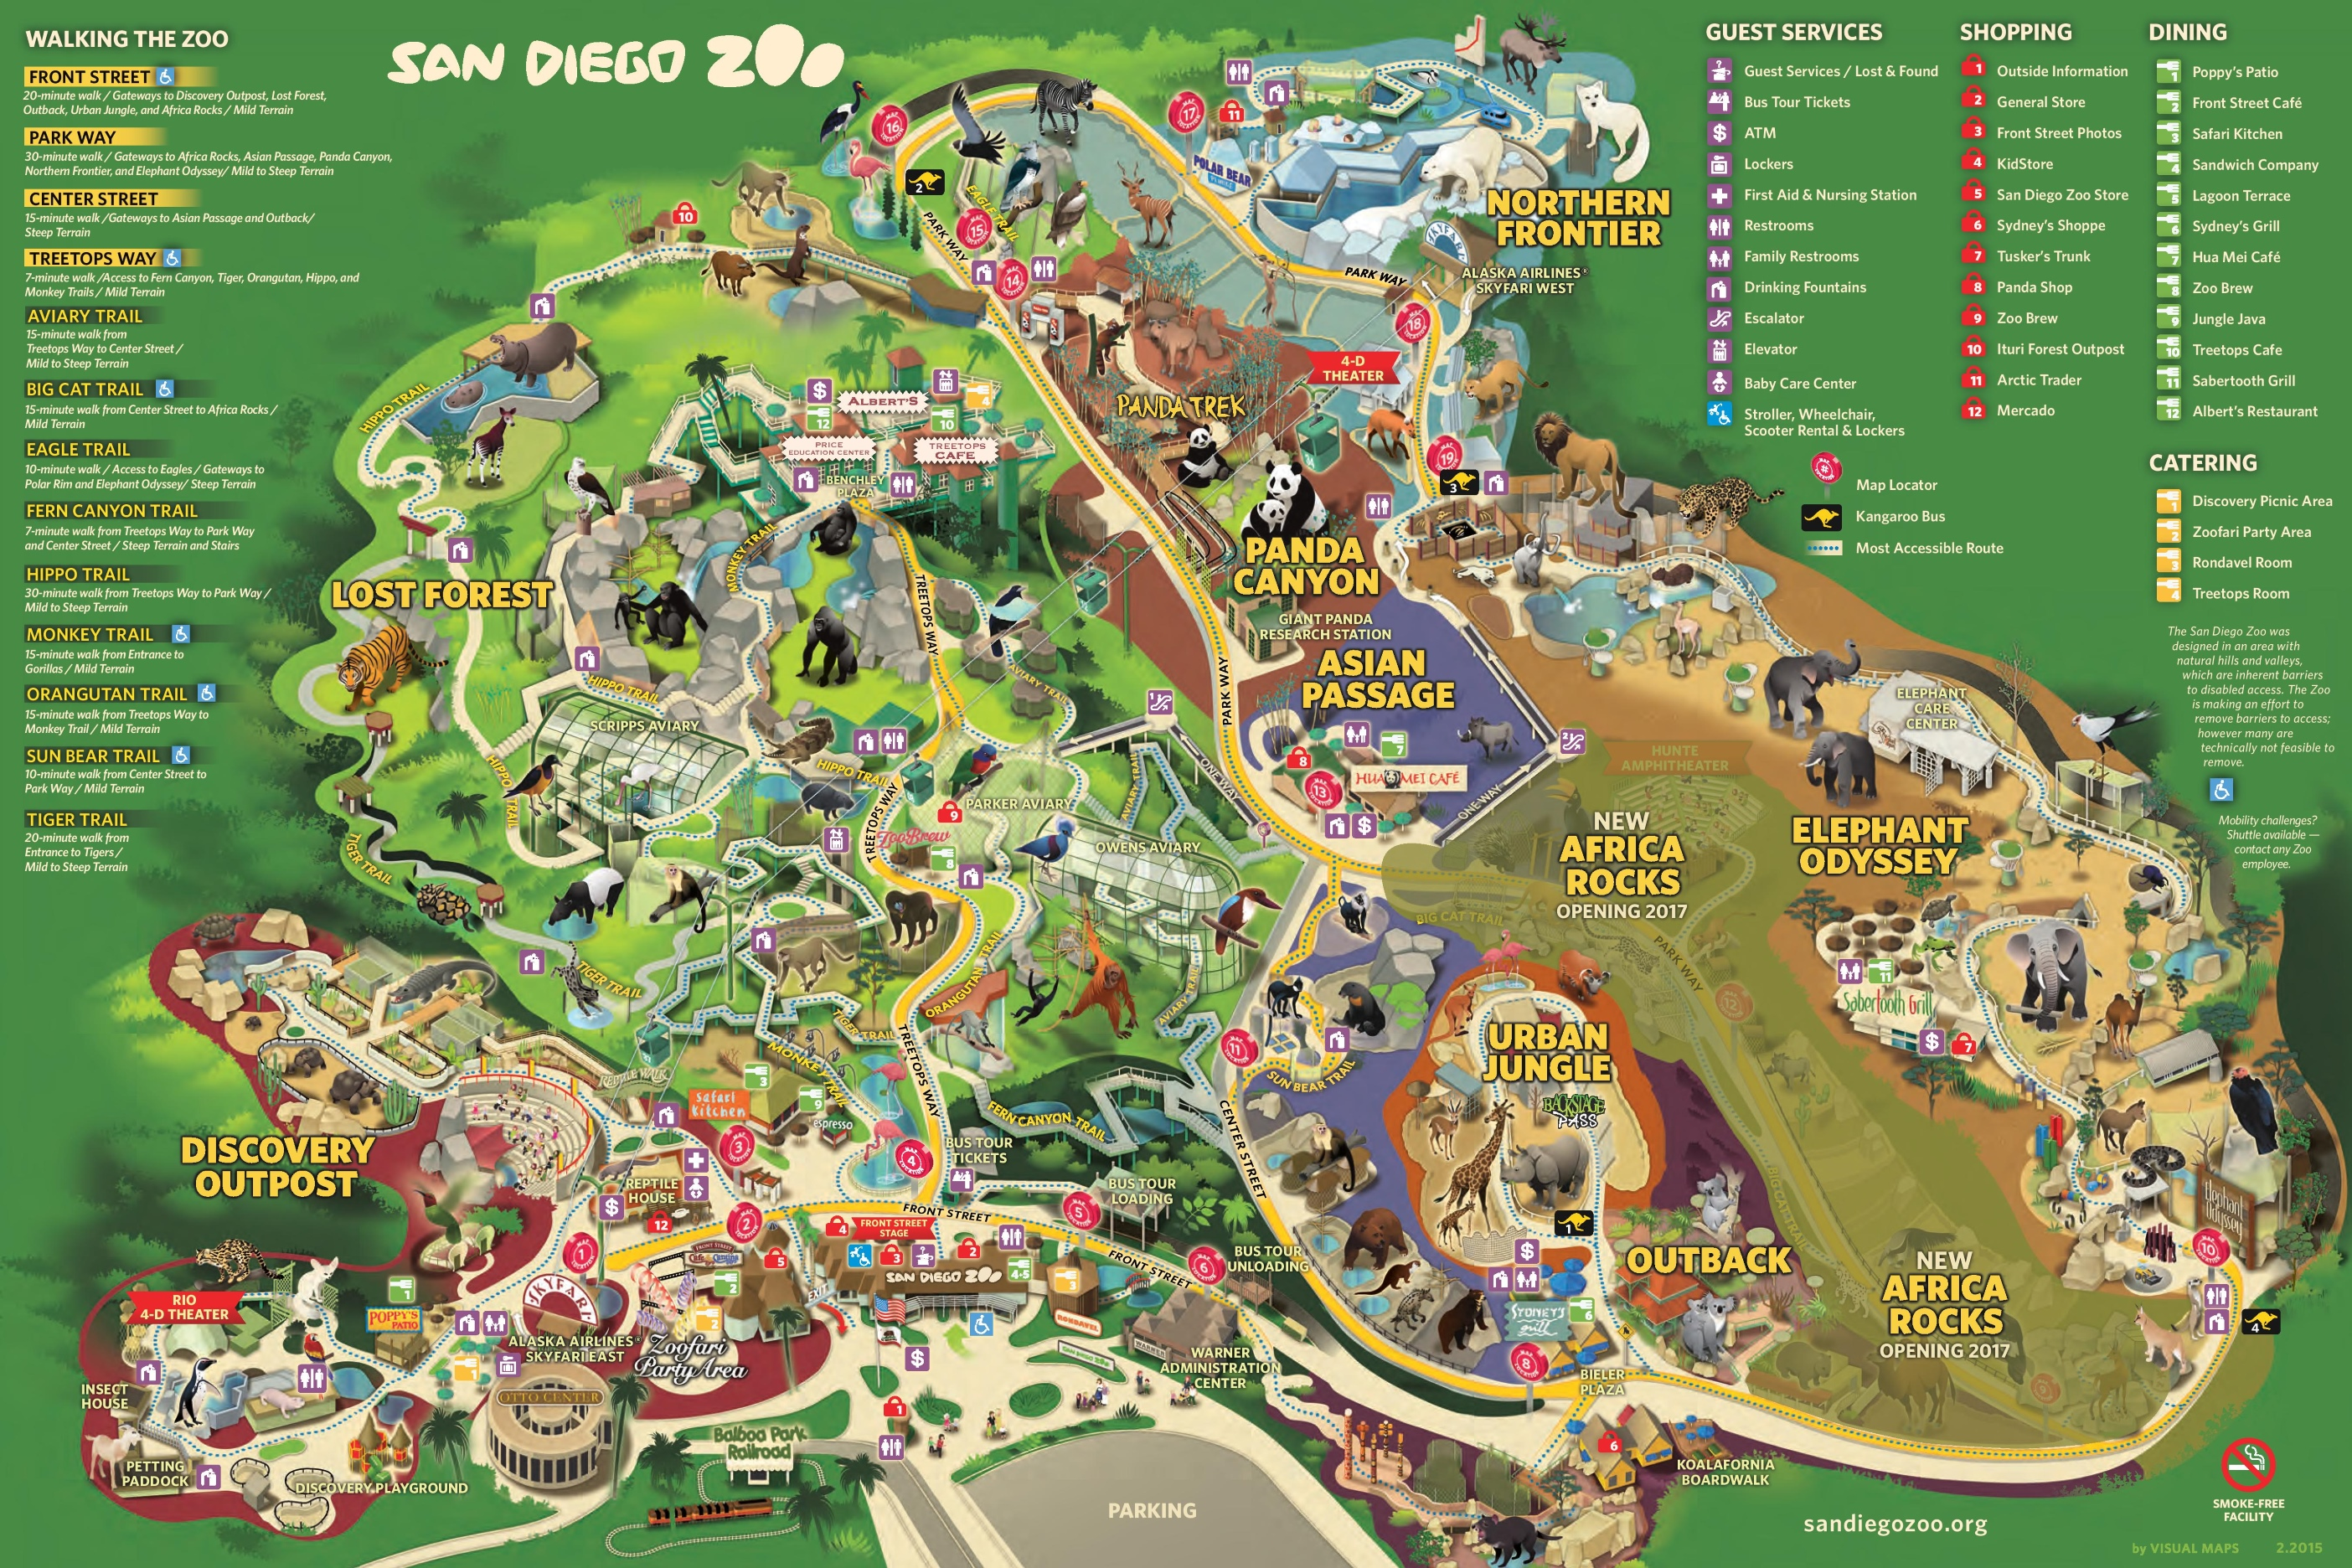 denver colorado map usa with San Diego Zoo Map on In Flea Markets furthermore Indianapolis Location On The Us Map besides Colorado together with Tourism G33388 Denver Colorado Vacations in addition K5sk Aspen Co Boulder Colorado.